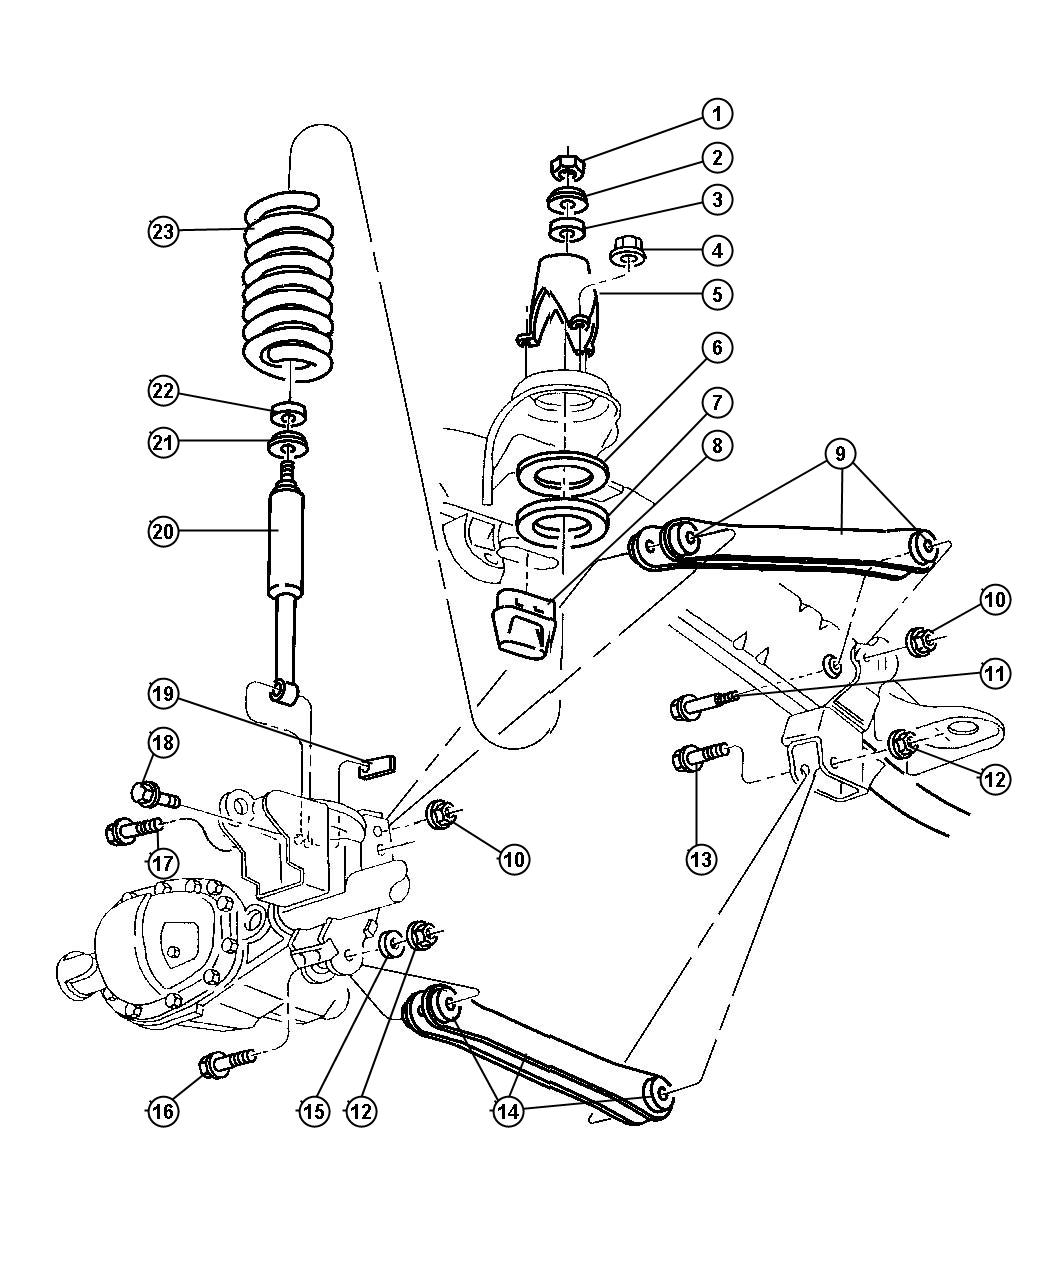 2003 dodge neon rear suspension diagram